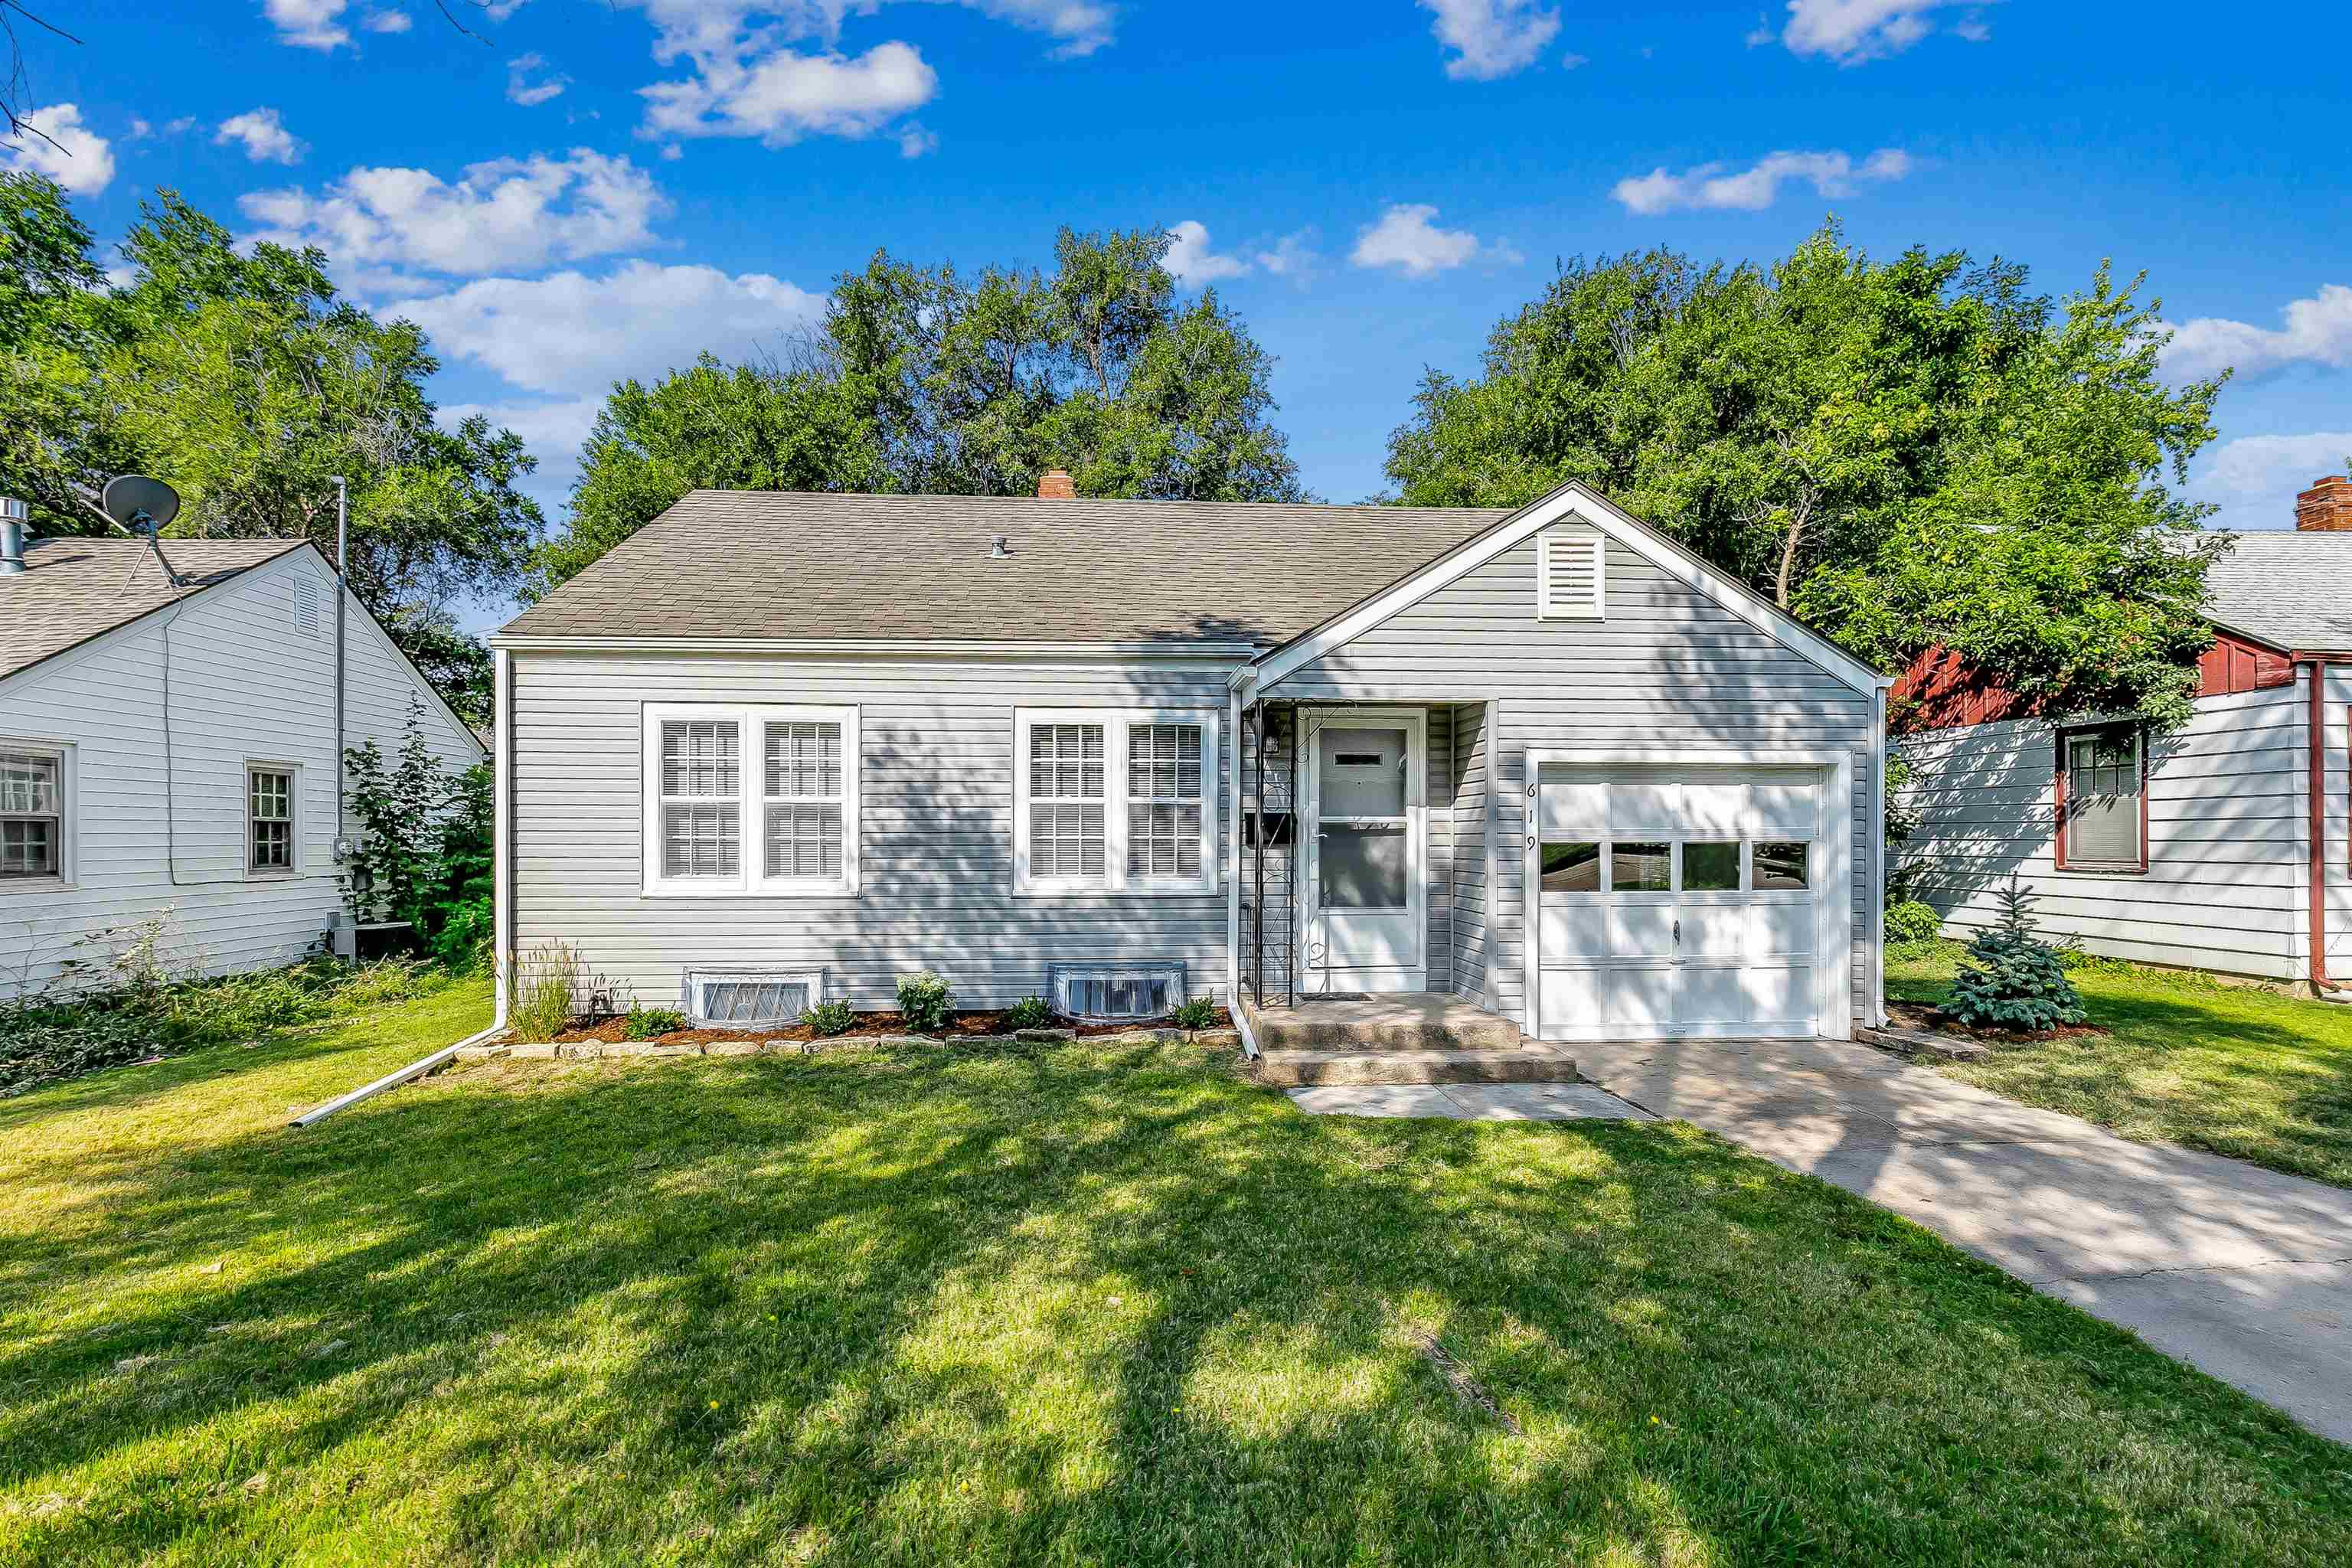 To be sold as is. Beautifully updated grey & white interior throughout! Even the garage interior and